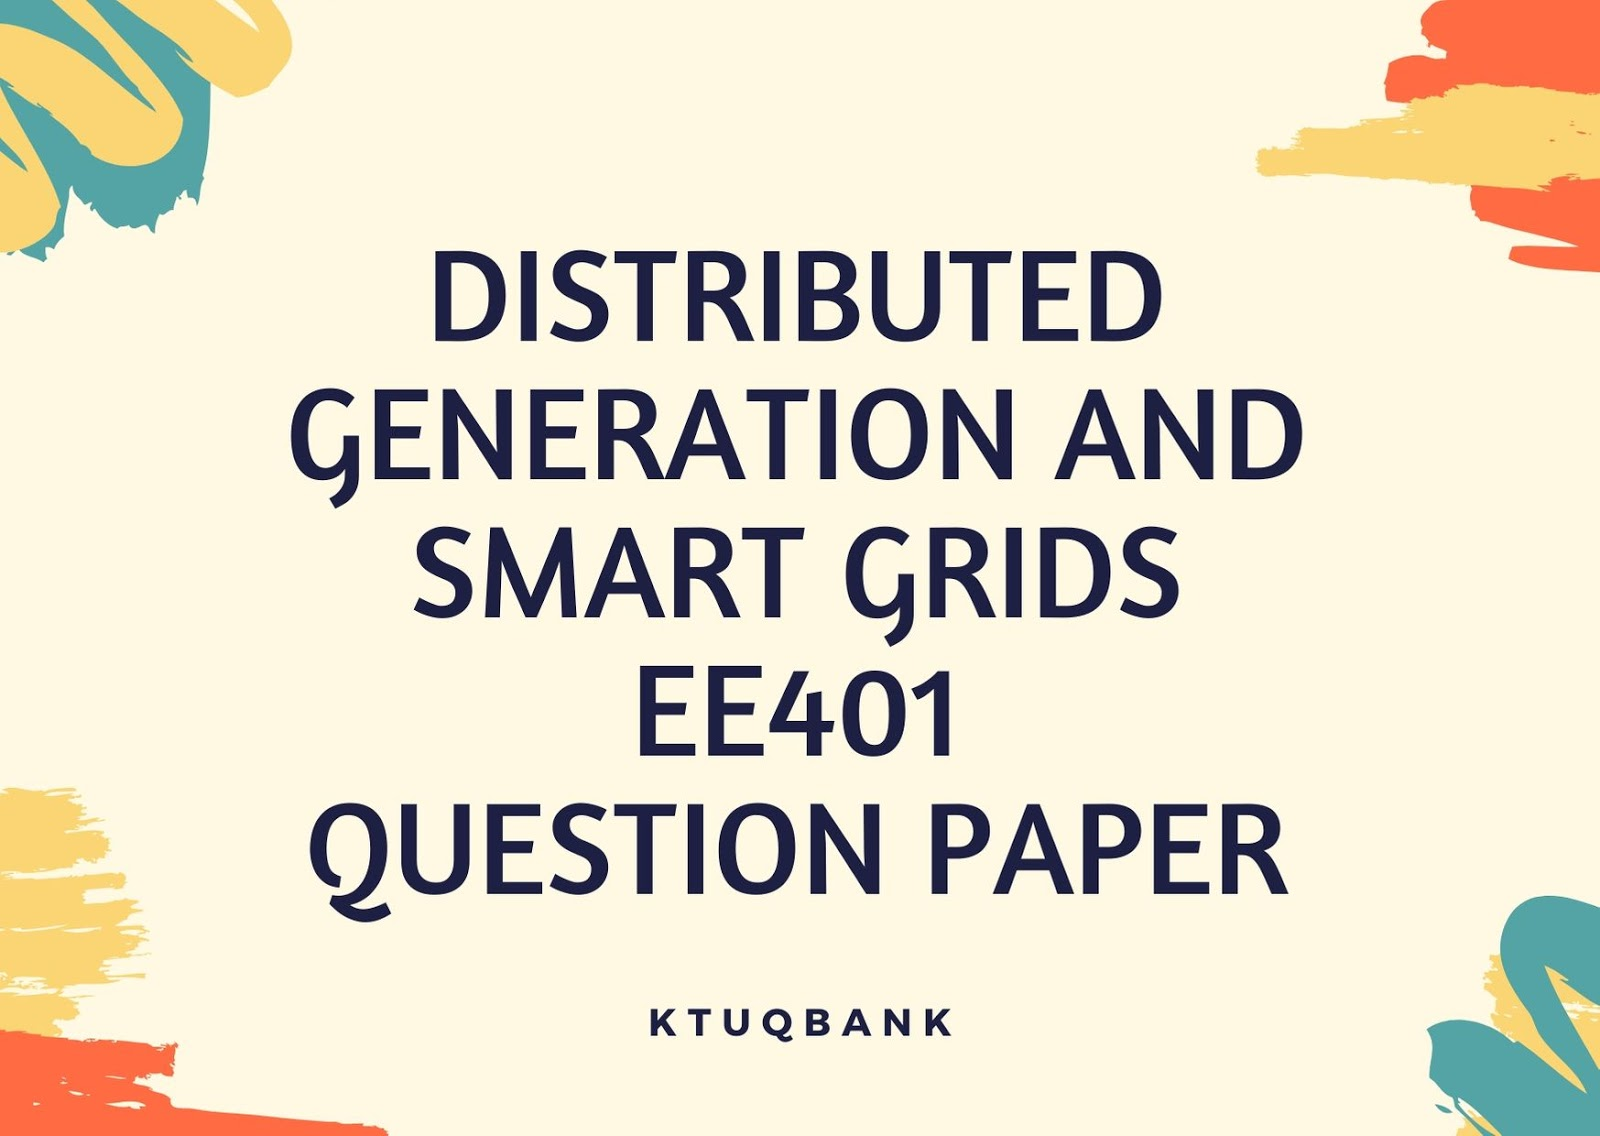 Distributed generation and smart grids | EE403 | Question Papers (2015 batch)